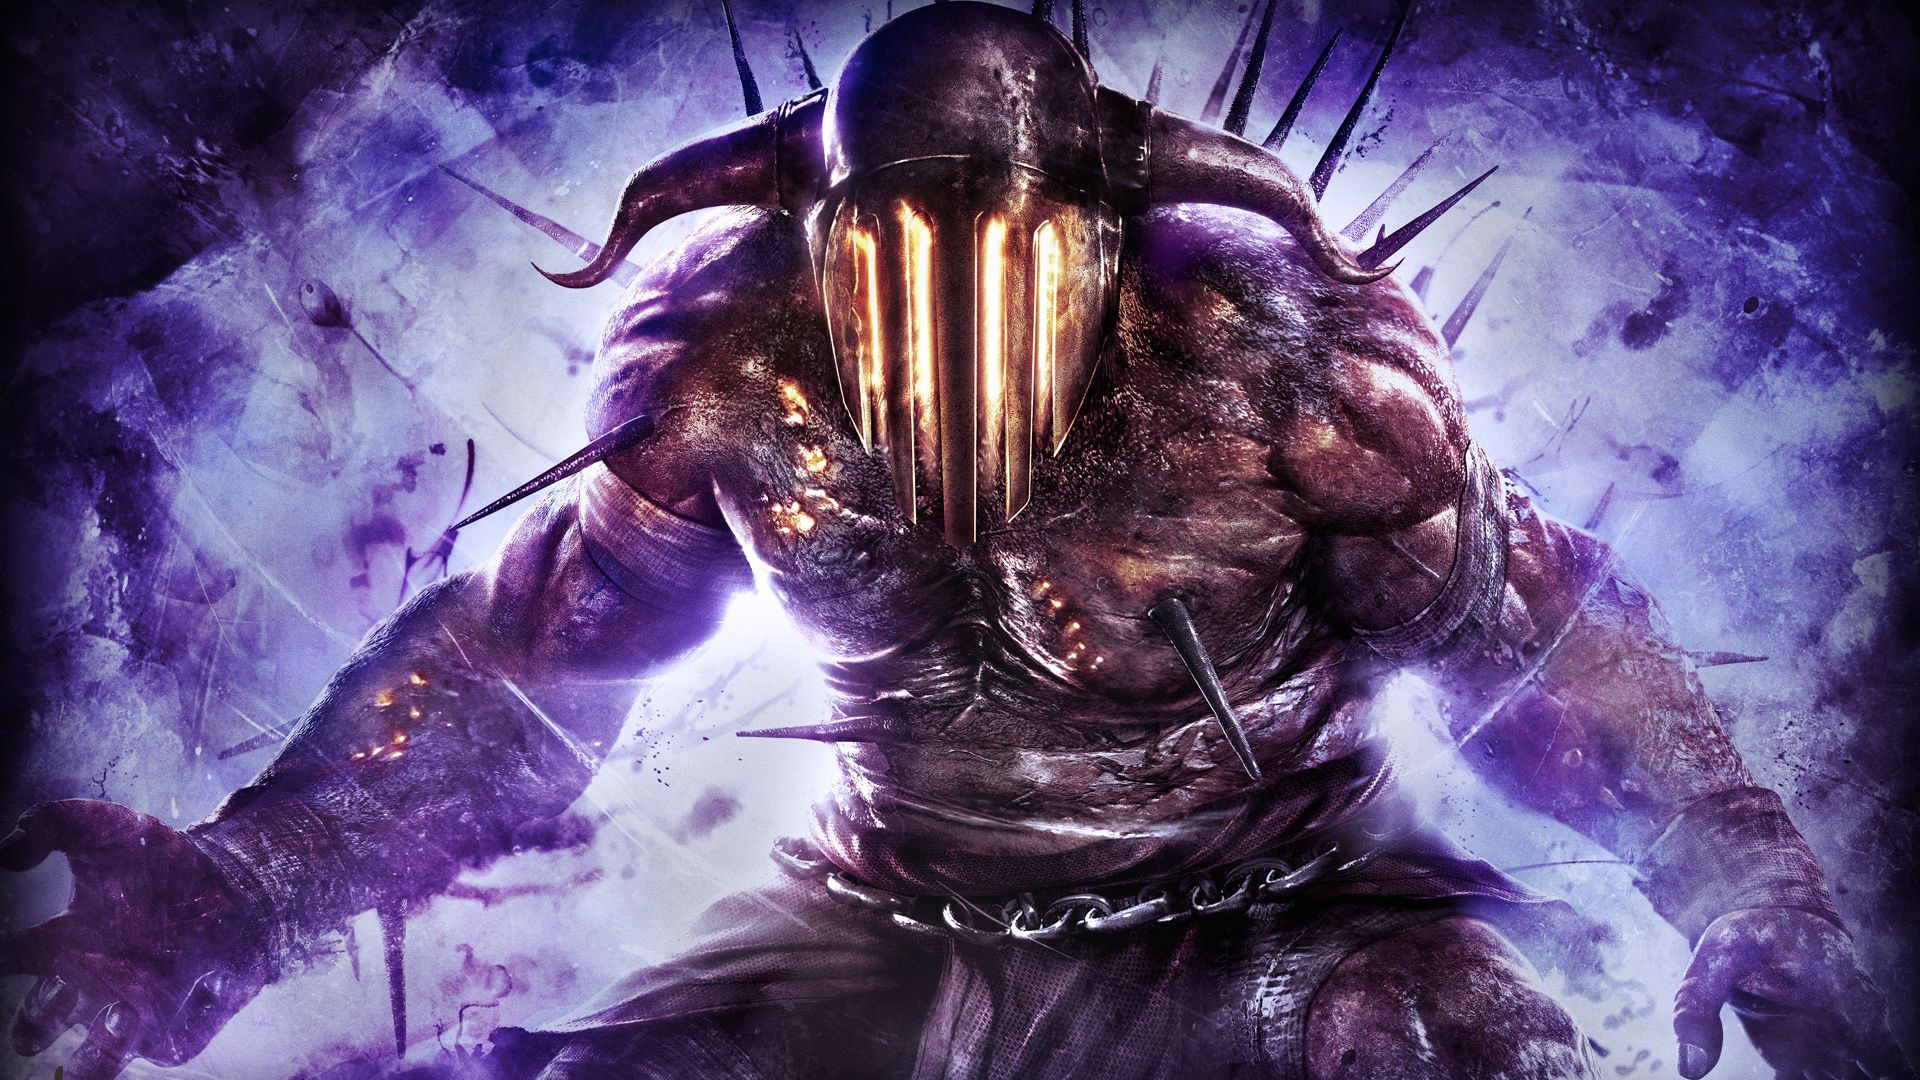 Hades In God Of War Ascension Wallpapers Wallpapers Hd Kratos God Of War God Of War God Of War Game